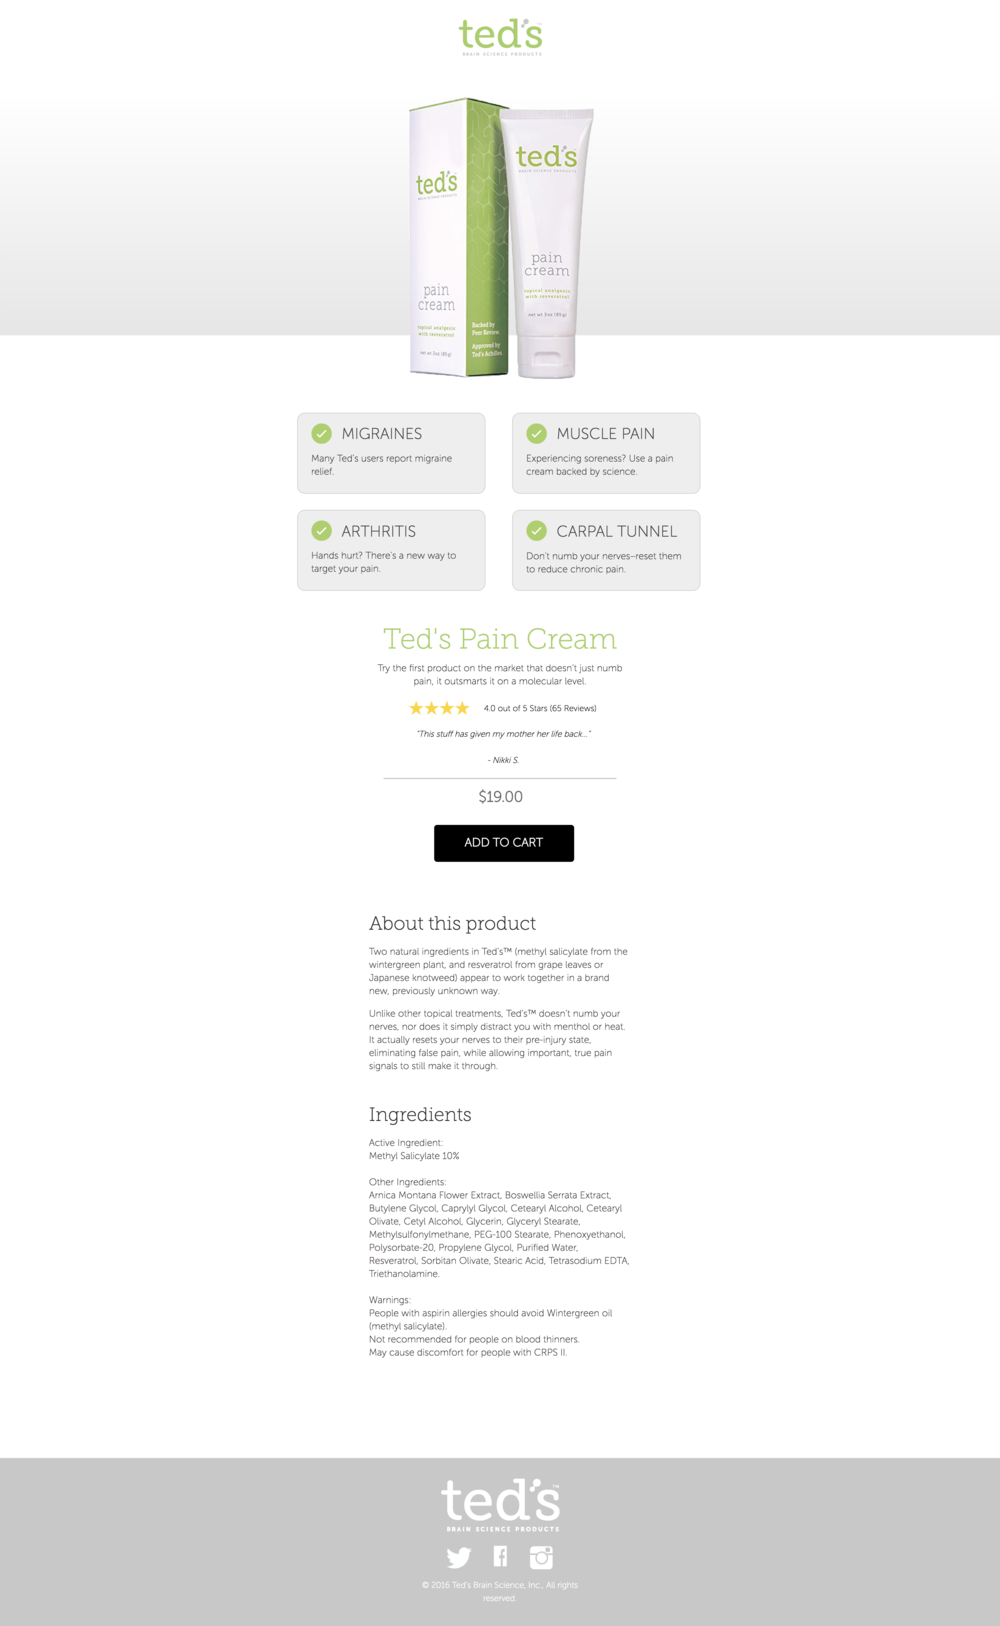 Treatment - This is the treatment version of Ted's Pain Cream 'Product' page. The only change made was to the 'Add-to-Cart' button, which is now black. Here are the results observed for the treatment page:605 visitors, 38 conversions (6.2% 'Add-to-Cart' Conversion Rate)